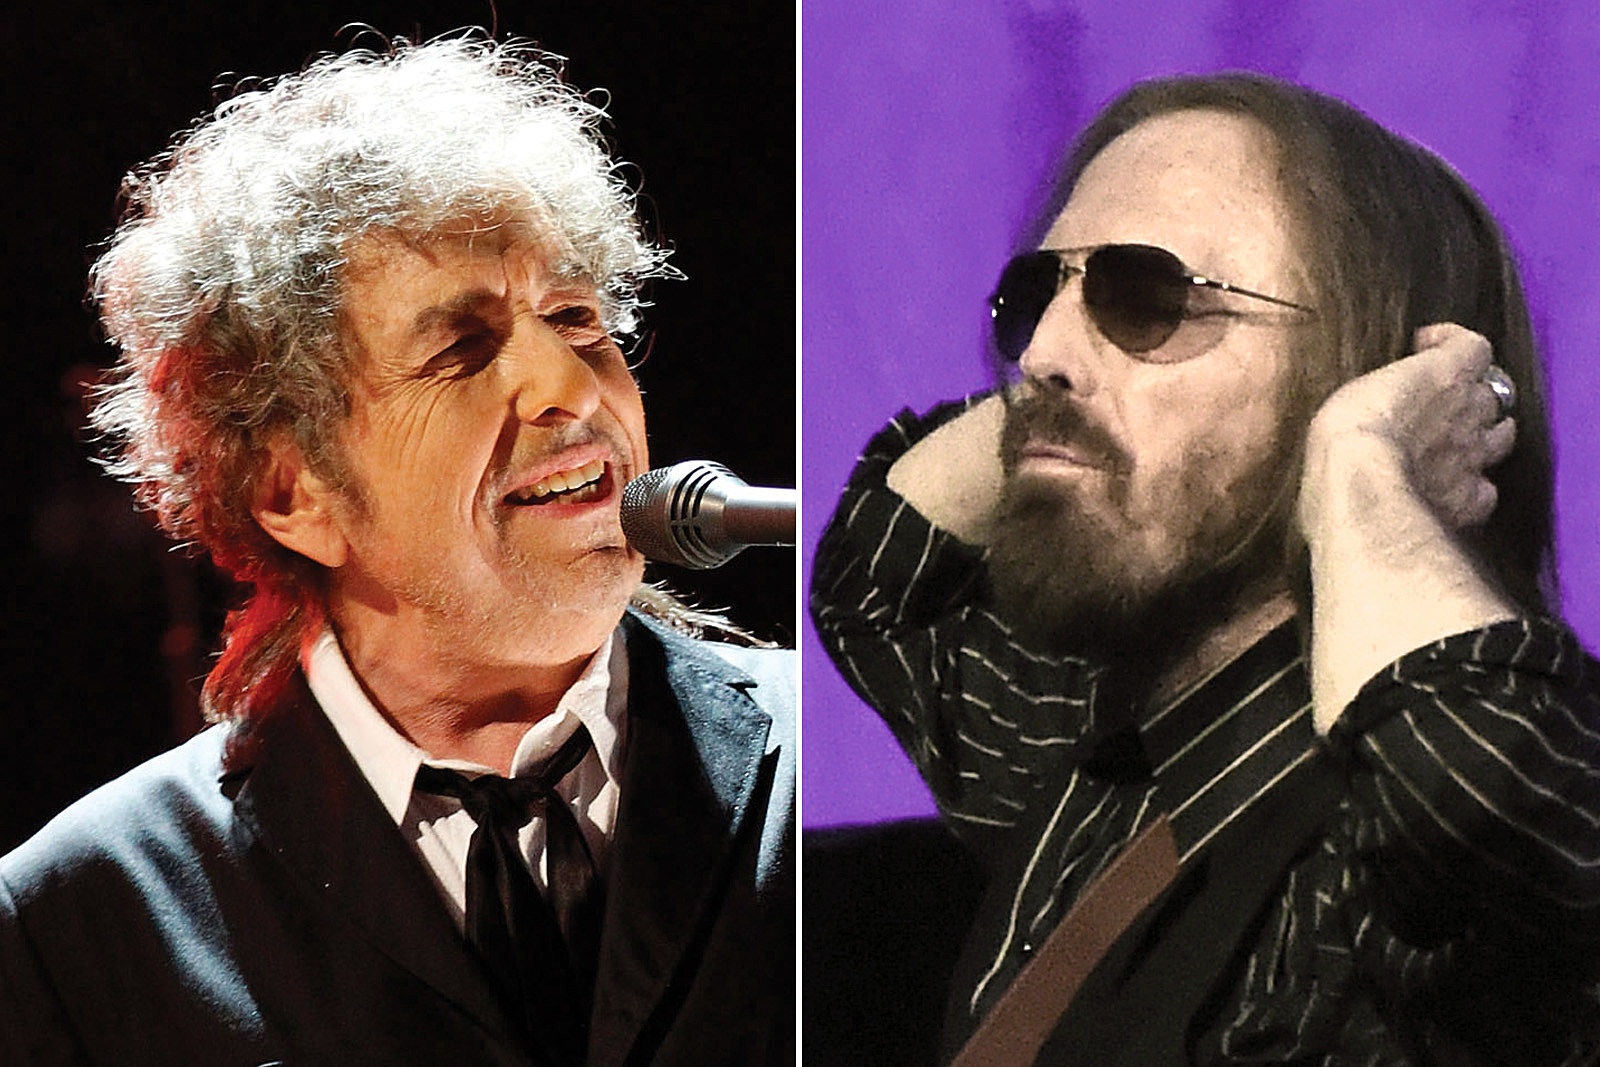 Watch Bob Dylan Perform 'Learning to Fly' in Tribute to Tom Petty